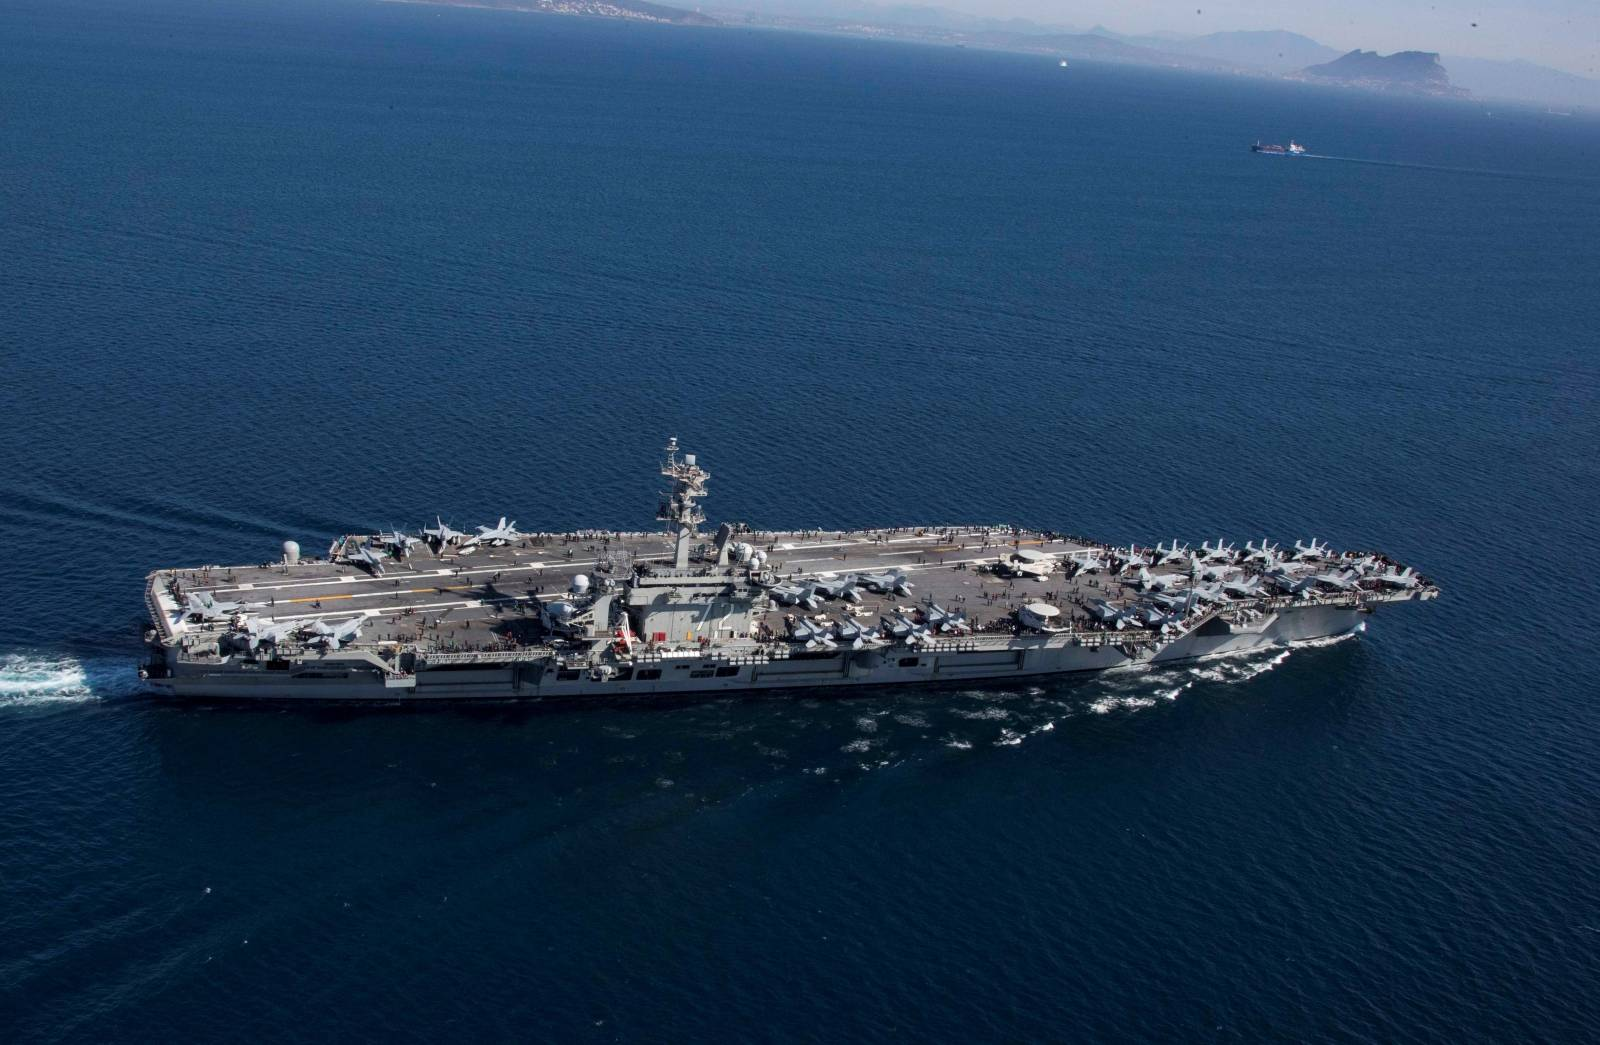 The Nimitz-class aircraft carrier USS Abraham Lincoln (CVN 72) transits the Strait of Gibraltar, entering the Mediterranean Sea